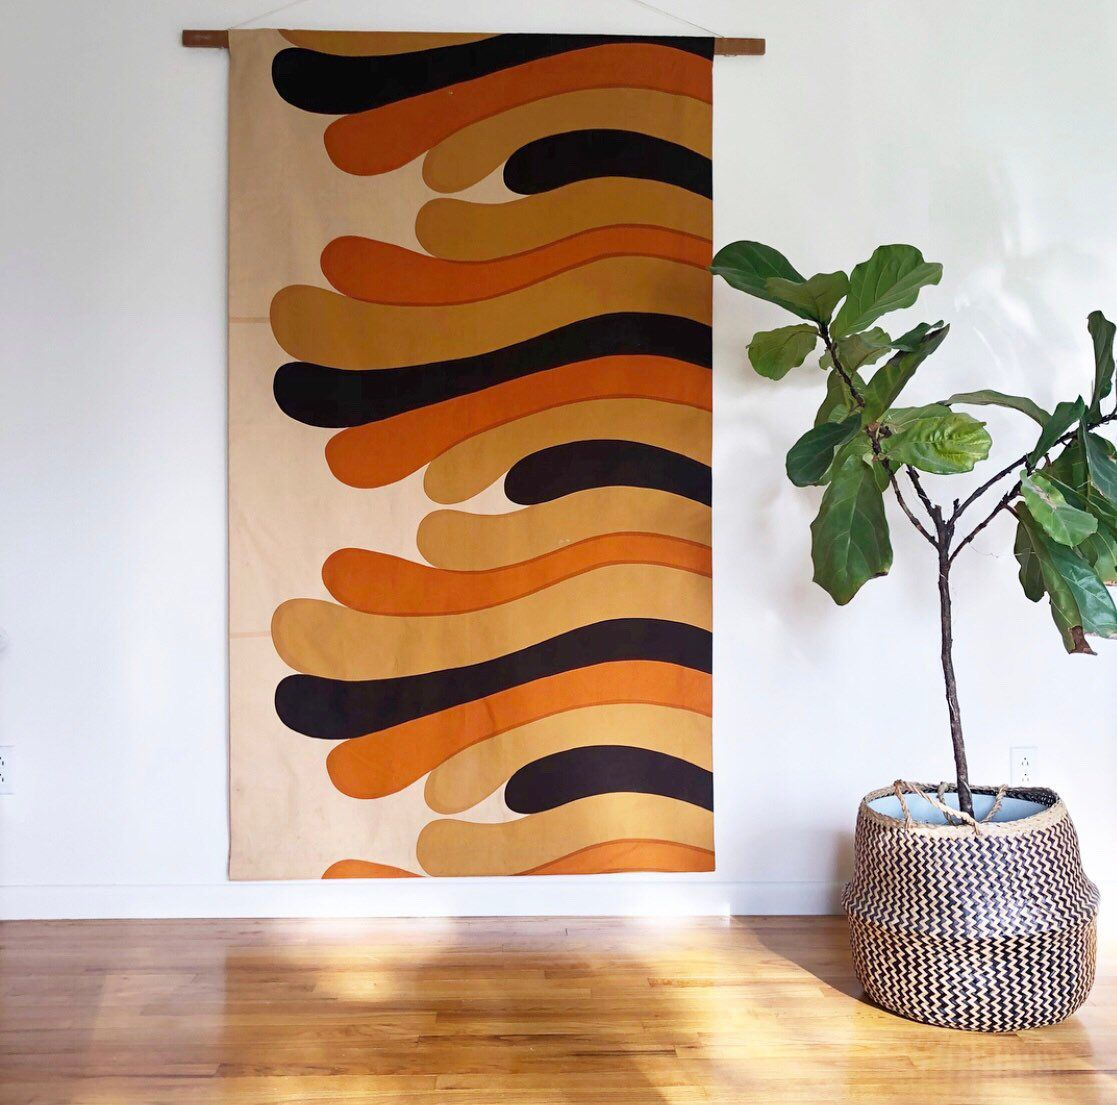 Maija Isola Marimekko Fabric Wall Hanging 60s 70s Home Decor Throughout Current Blended Fabric Salty But Sweet Wall Hangings (View 6 of 20)